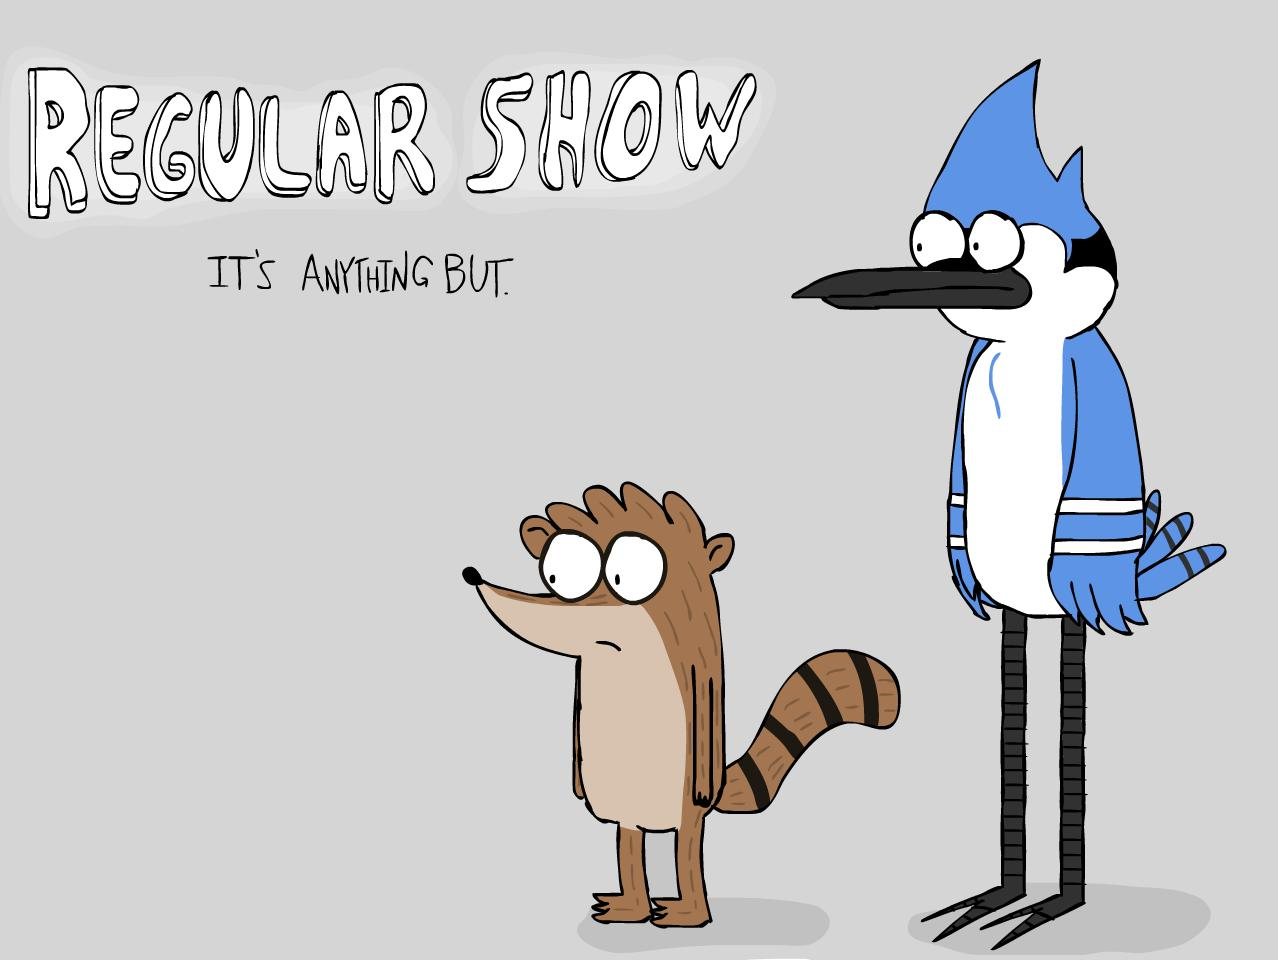 http://images5.fanpop.com/image/photos/25800000/The-Regular-Show-regular-show-25861100-1278-960.jpg